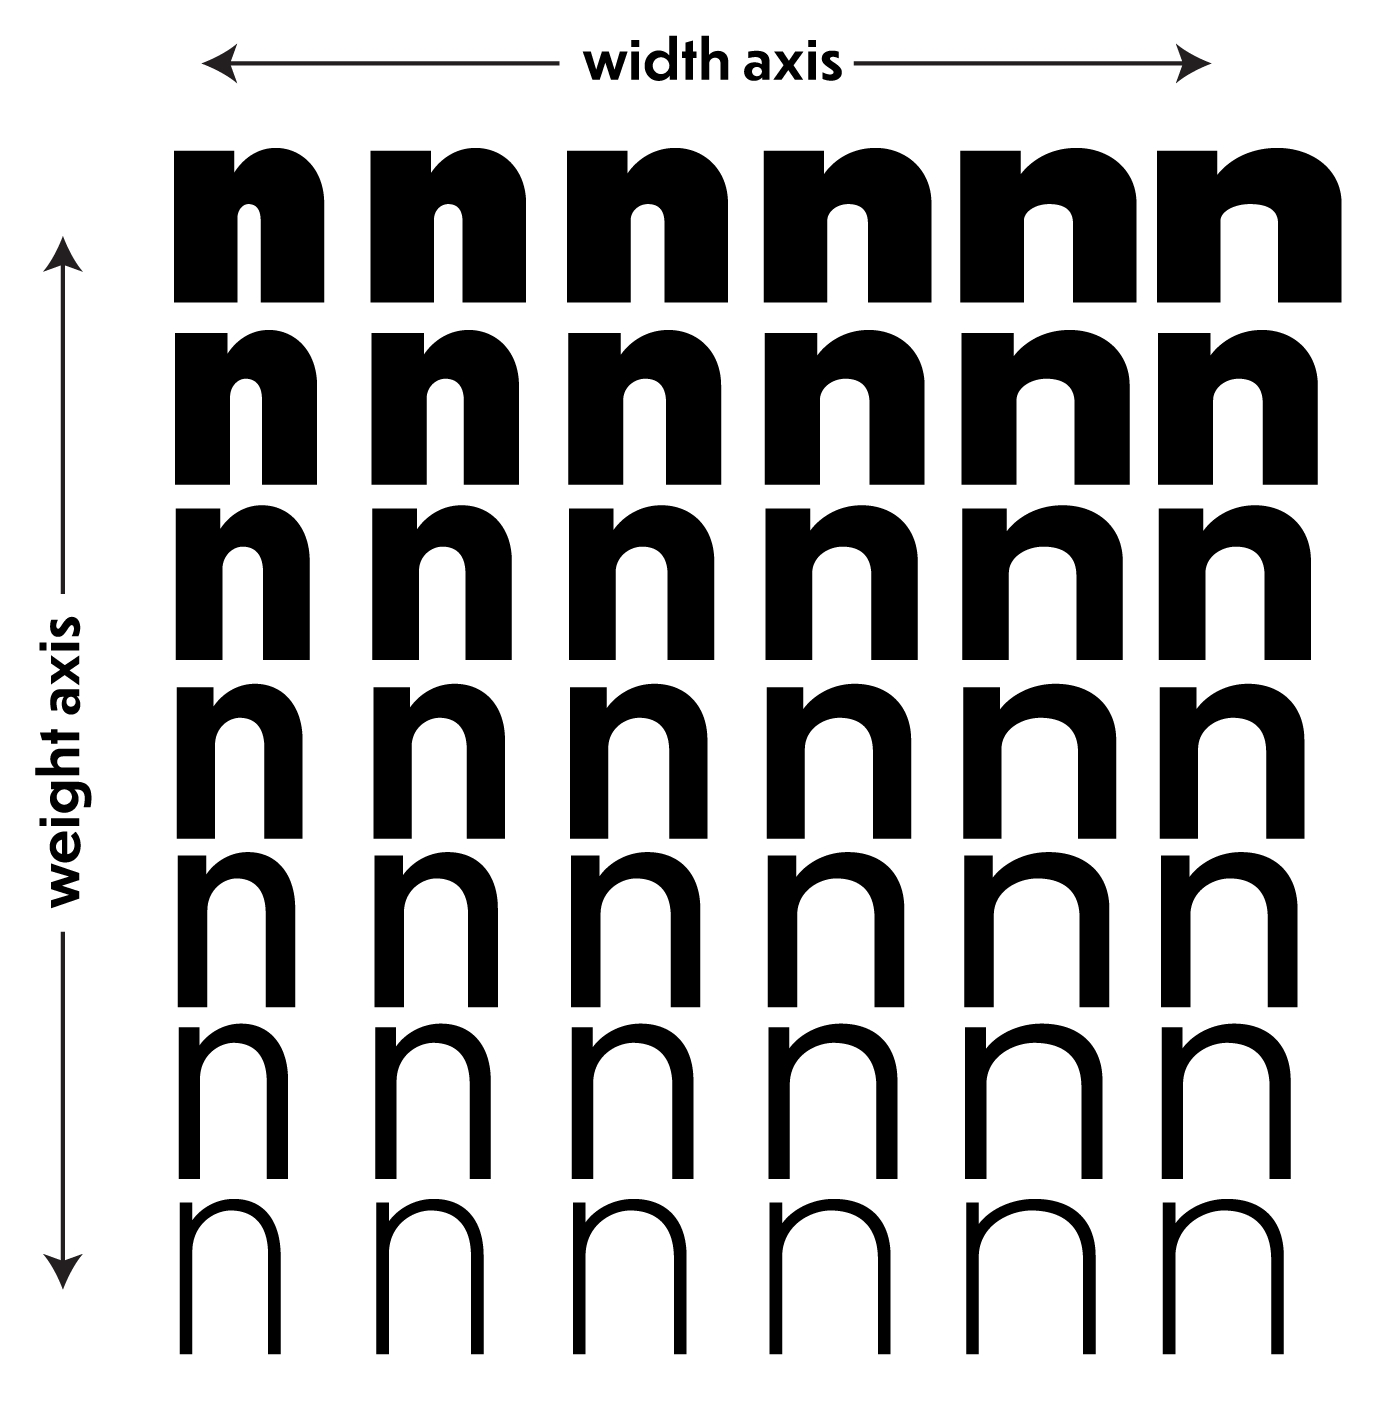 Continuous variation of weights and widths across multiple axes. All illustrations by  CJ Dunn  using  Dunbar .